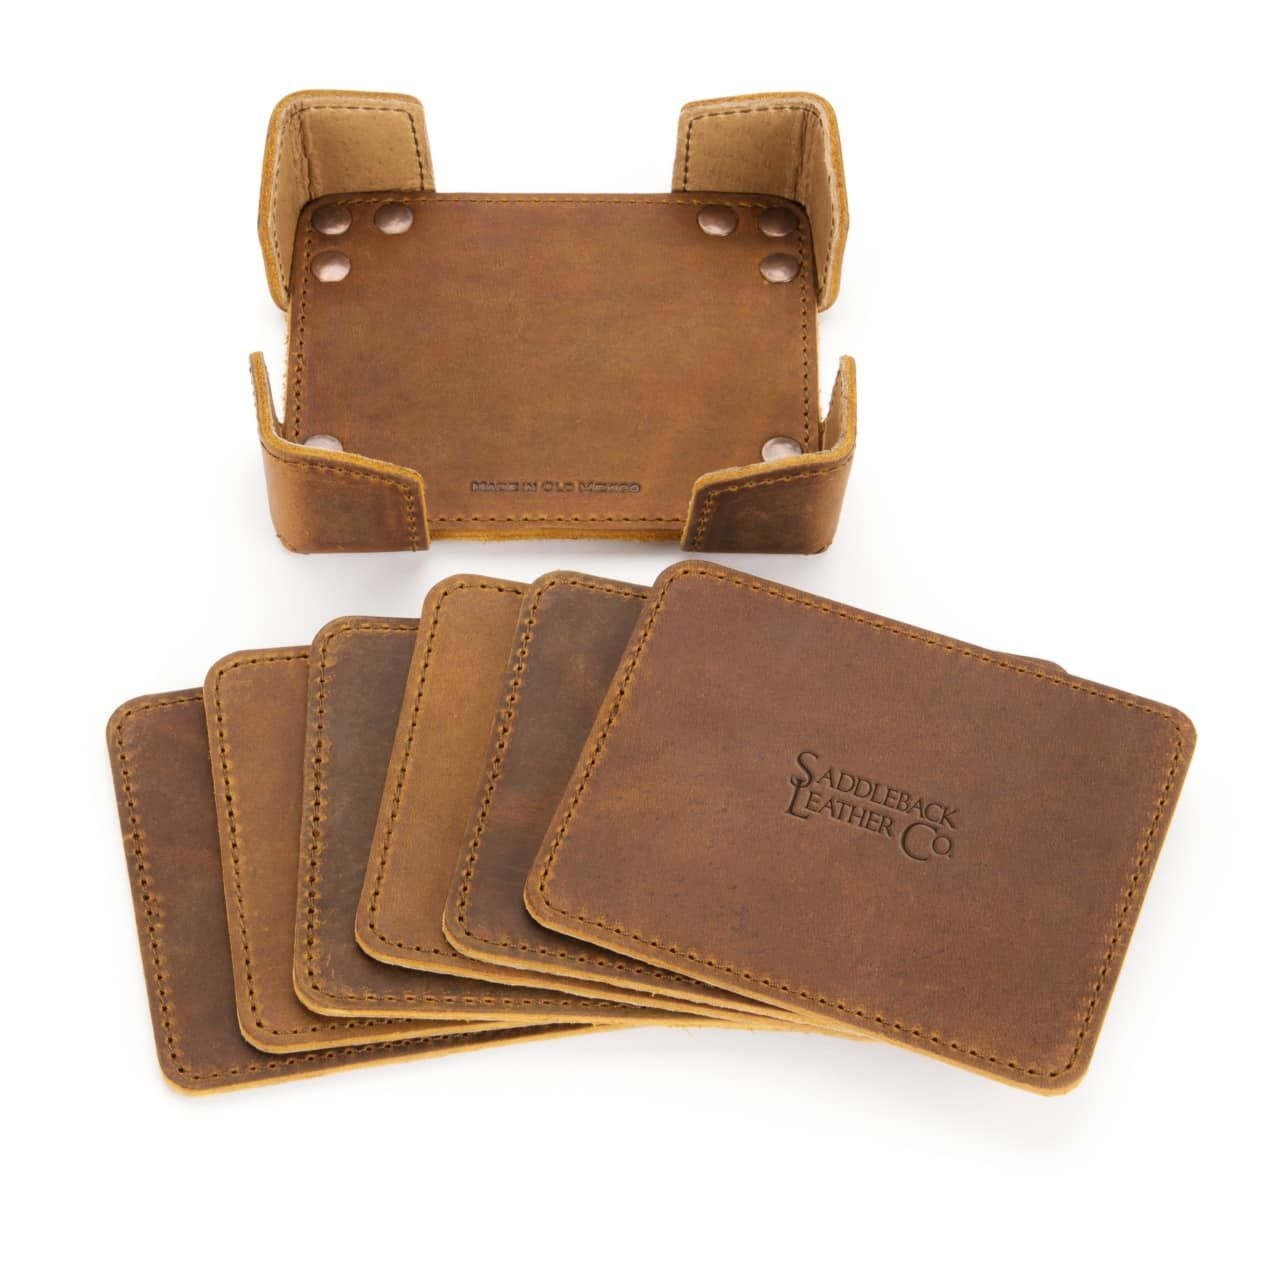 leather coaster set in tobacco leather